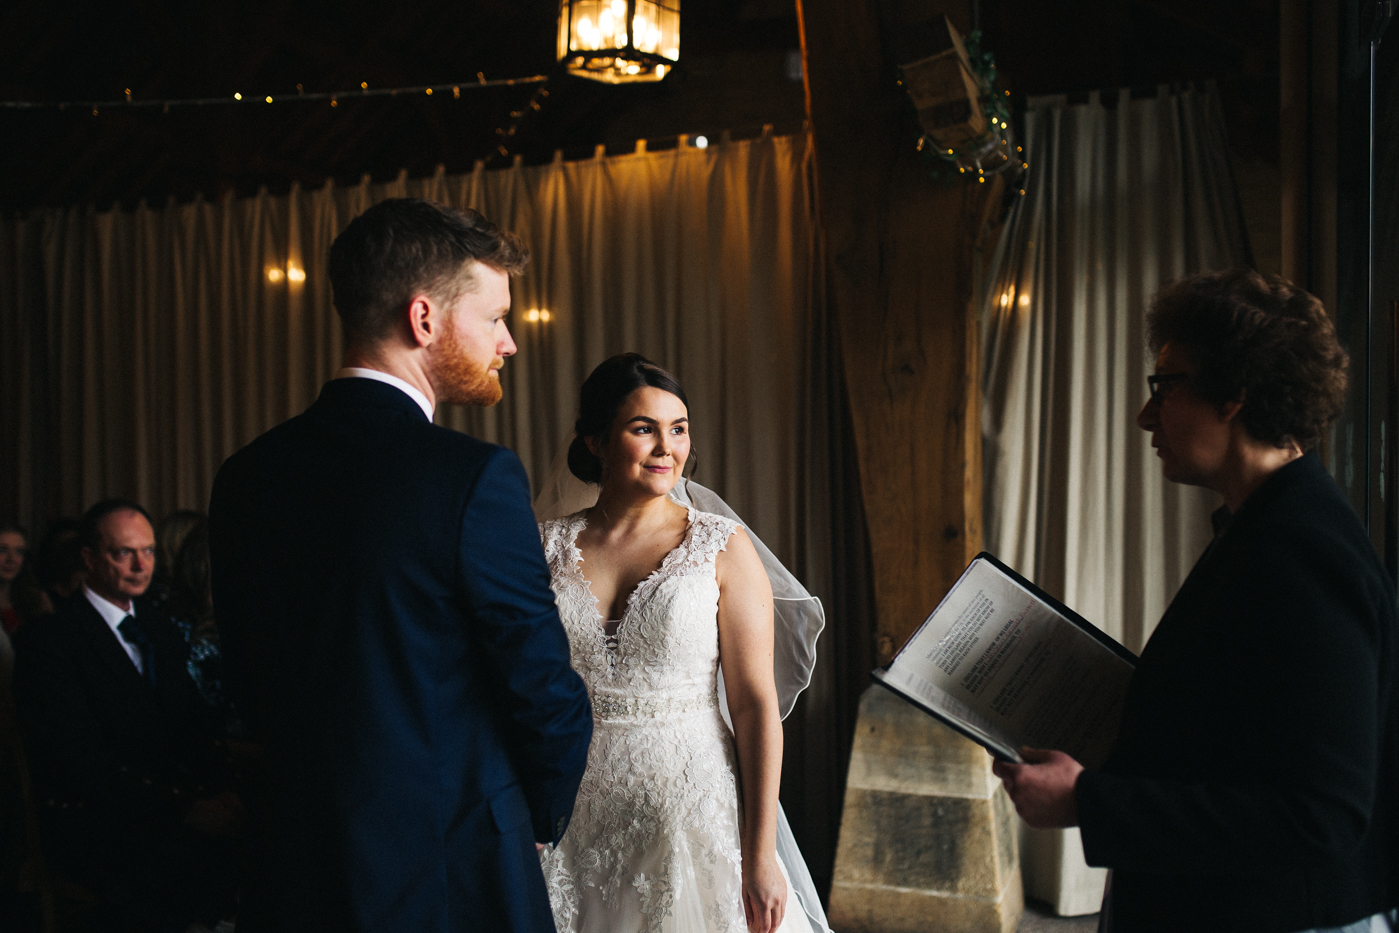 the bride and groom stand together during the ceremony. spring barn wedding at east riddlesden hall keighley west yorkshire wedding photographer